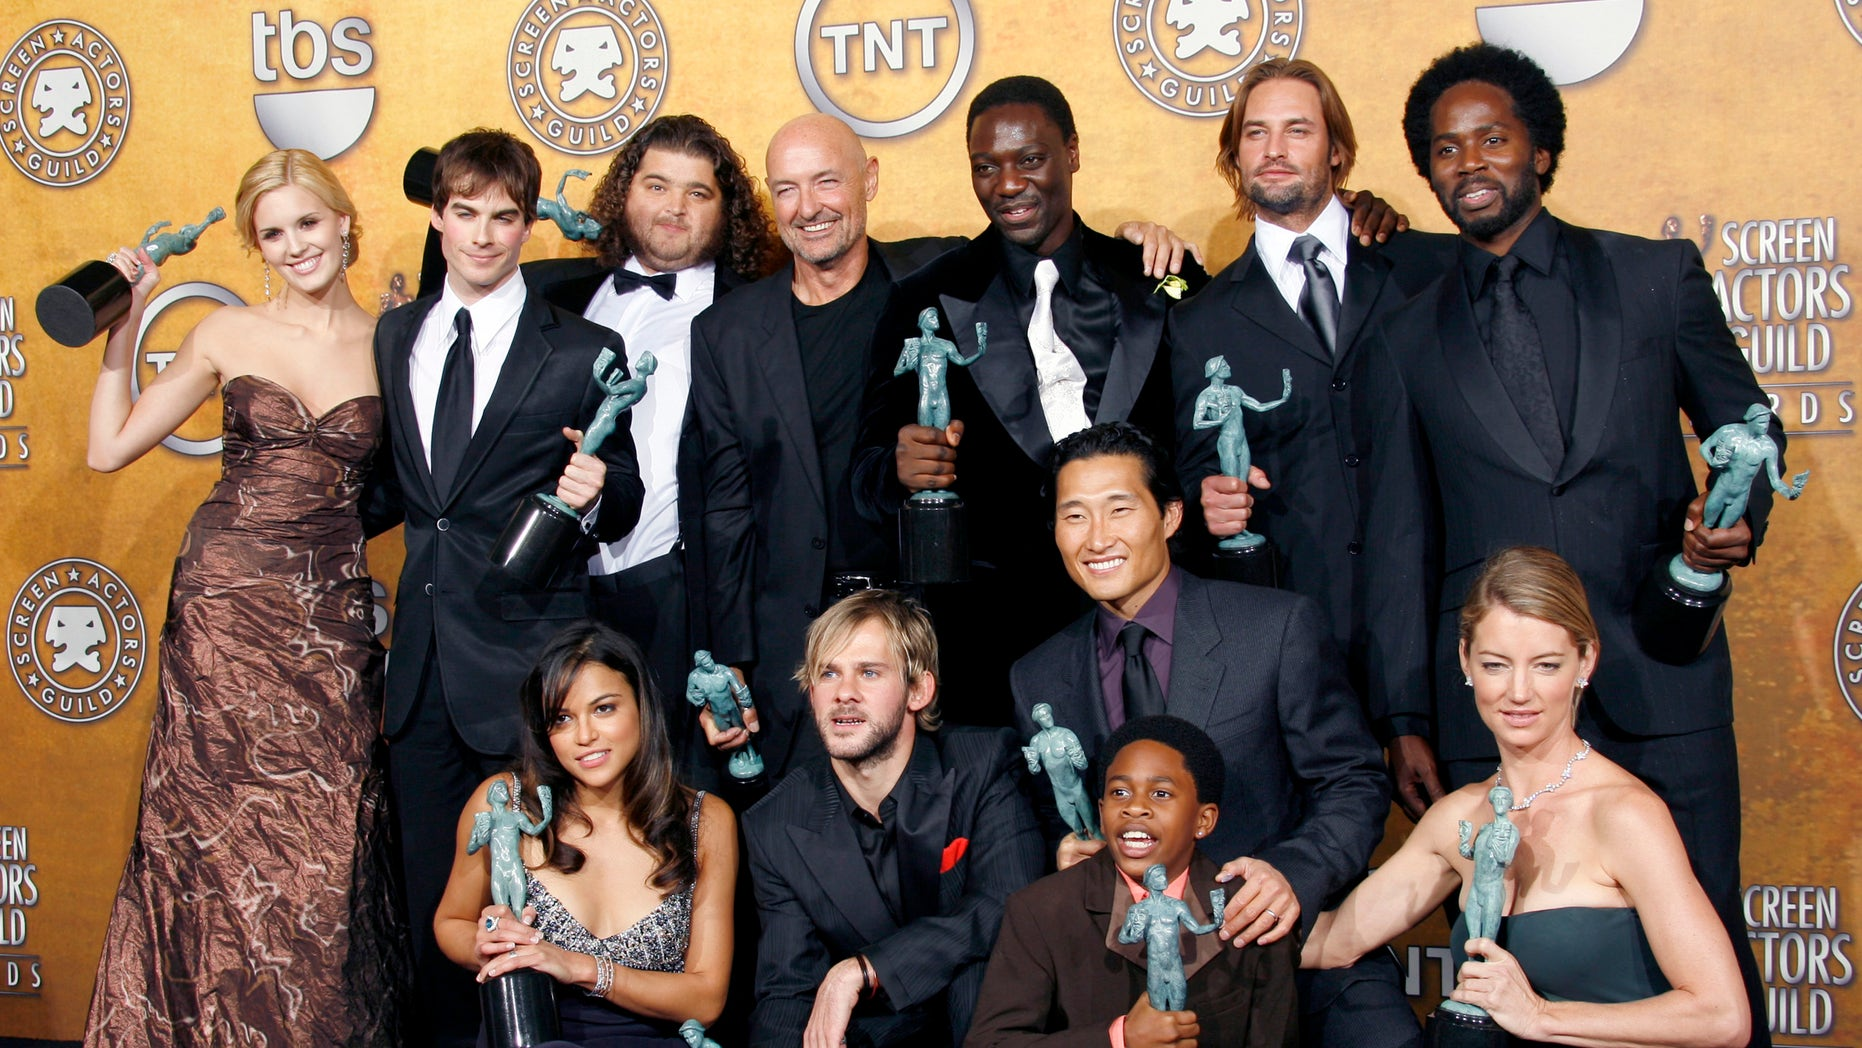 "The cast of the series ""Lost"" celebrate with their trophies backstage for their win in the category of outstanding performance by an ensemble in a drama series at the 12th annual Screen Actors Guild Awards in Los Angeles, California Jan. 29, 2006."